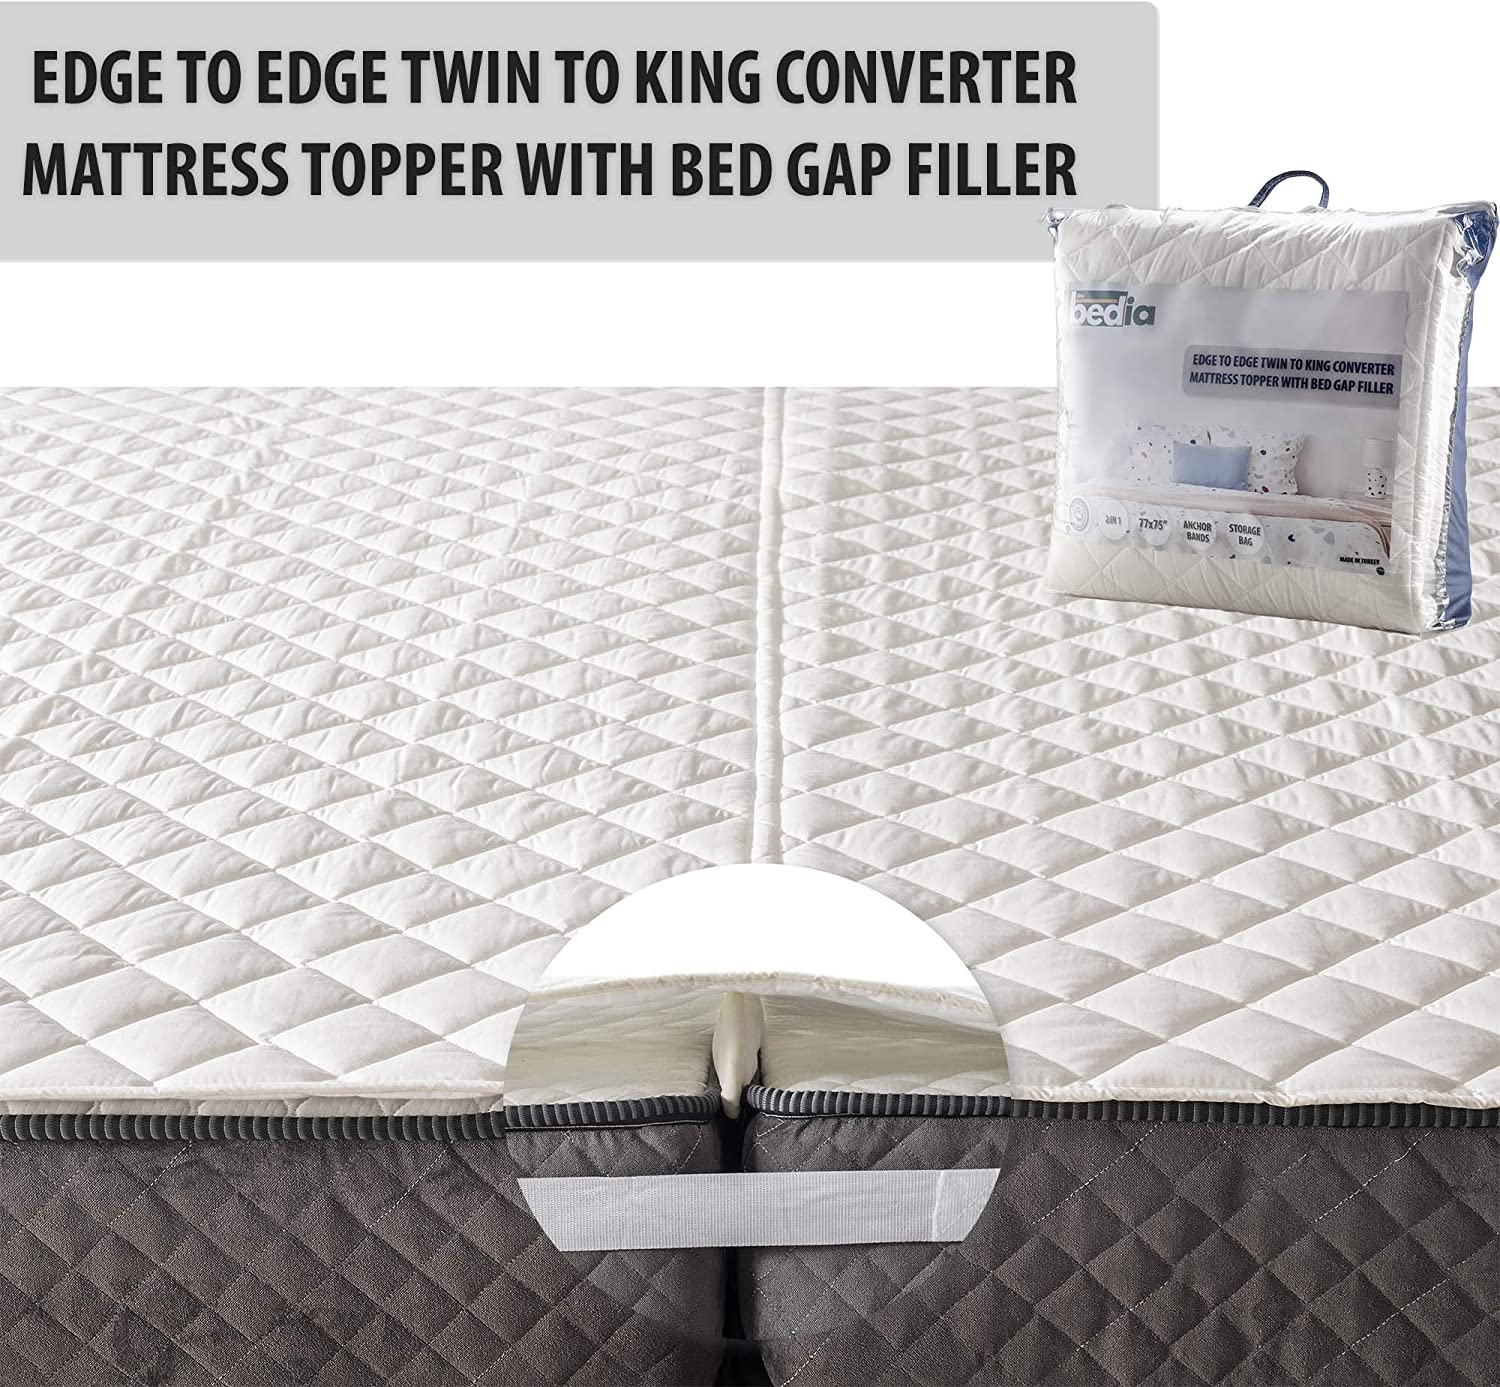 BEDIA Bed Sale Special Price Bridge Connector Twin Ranking TOP17 to King Adjustable Converter